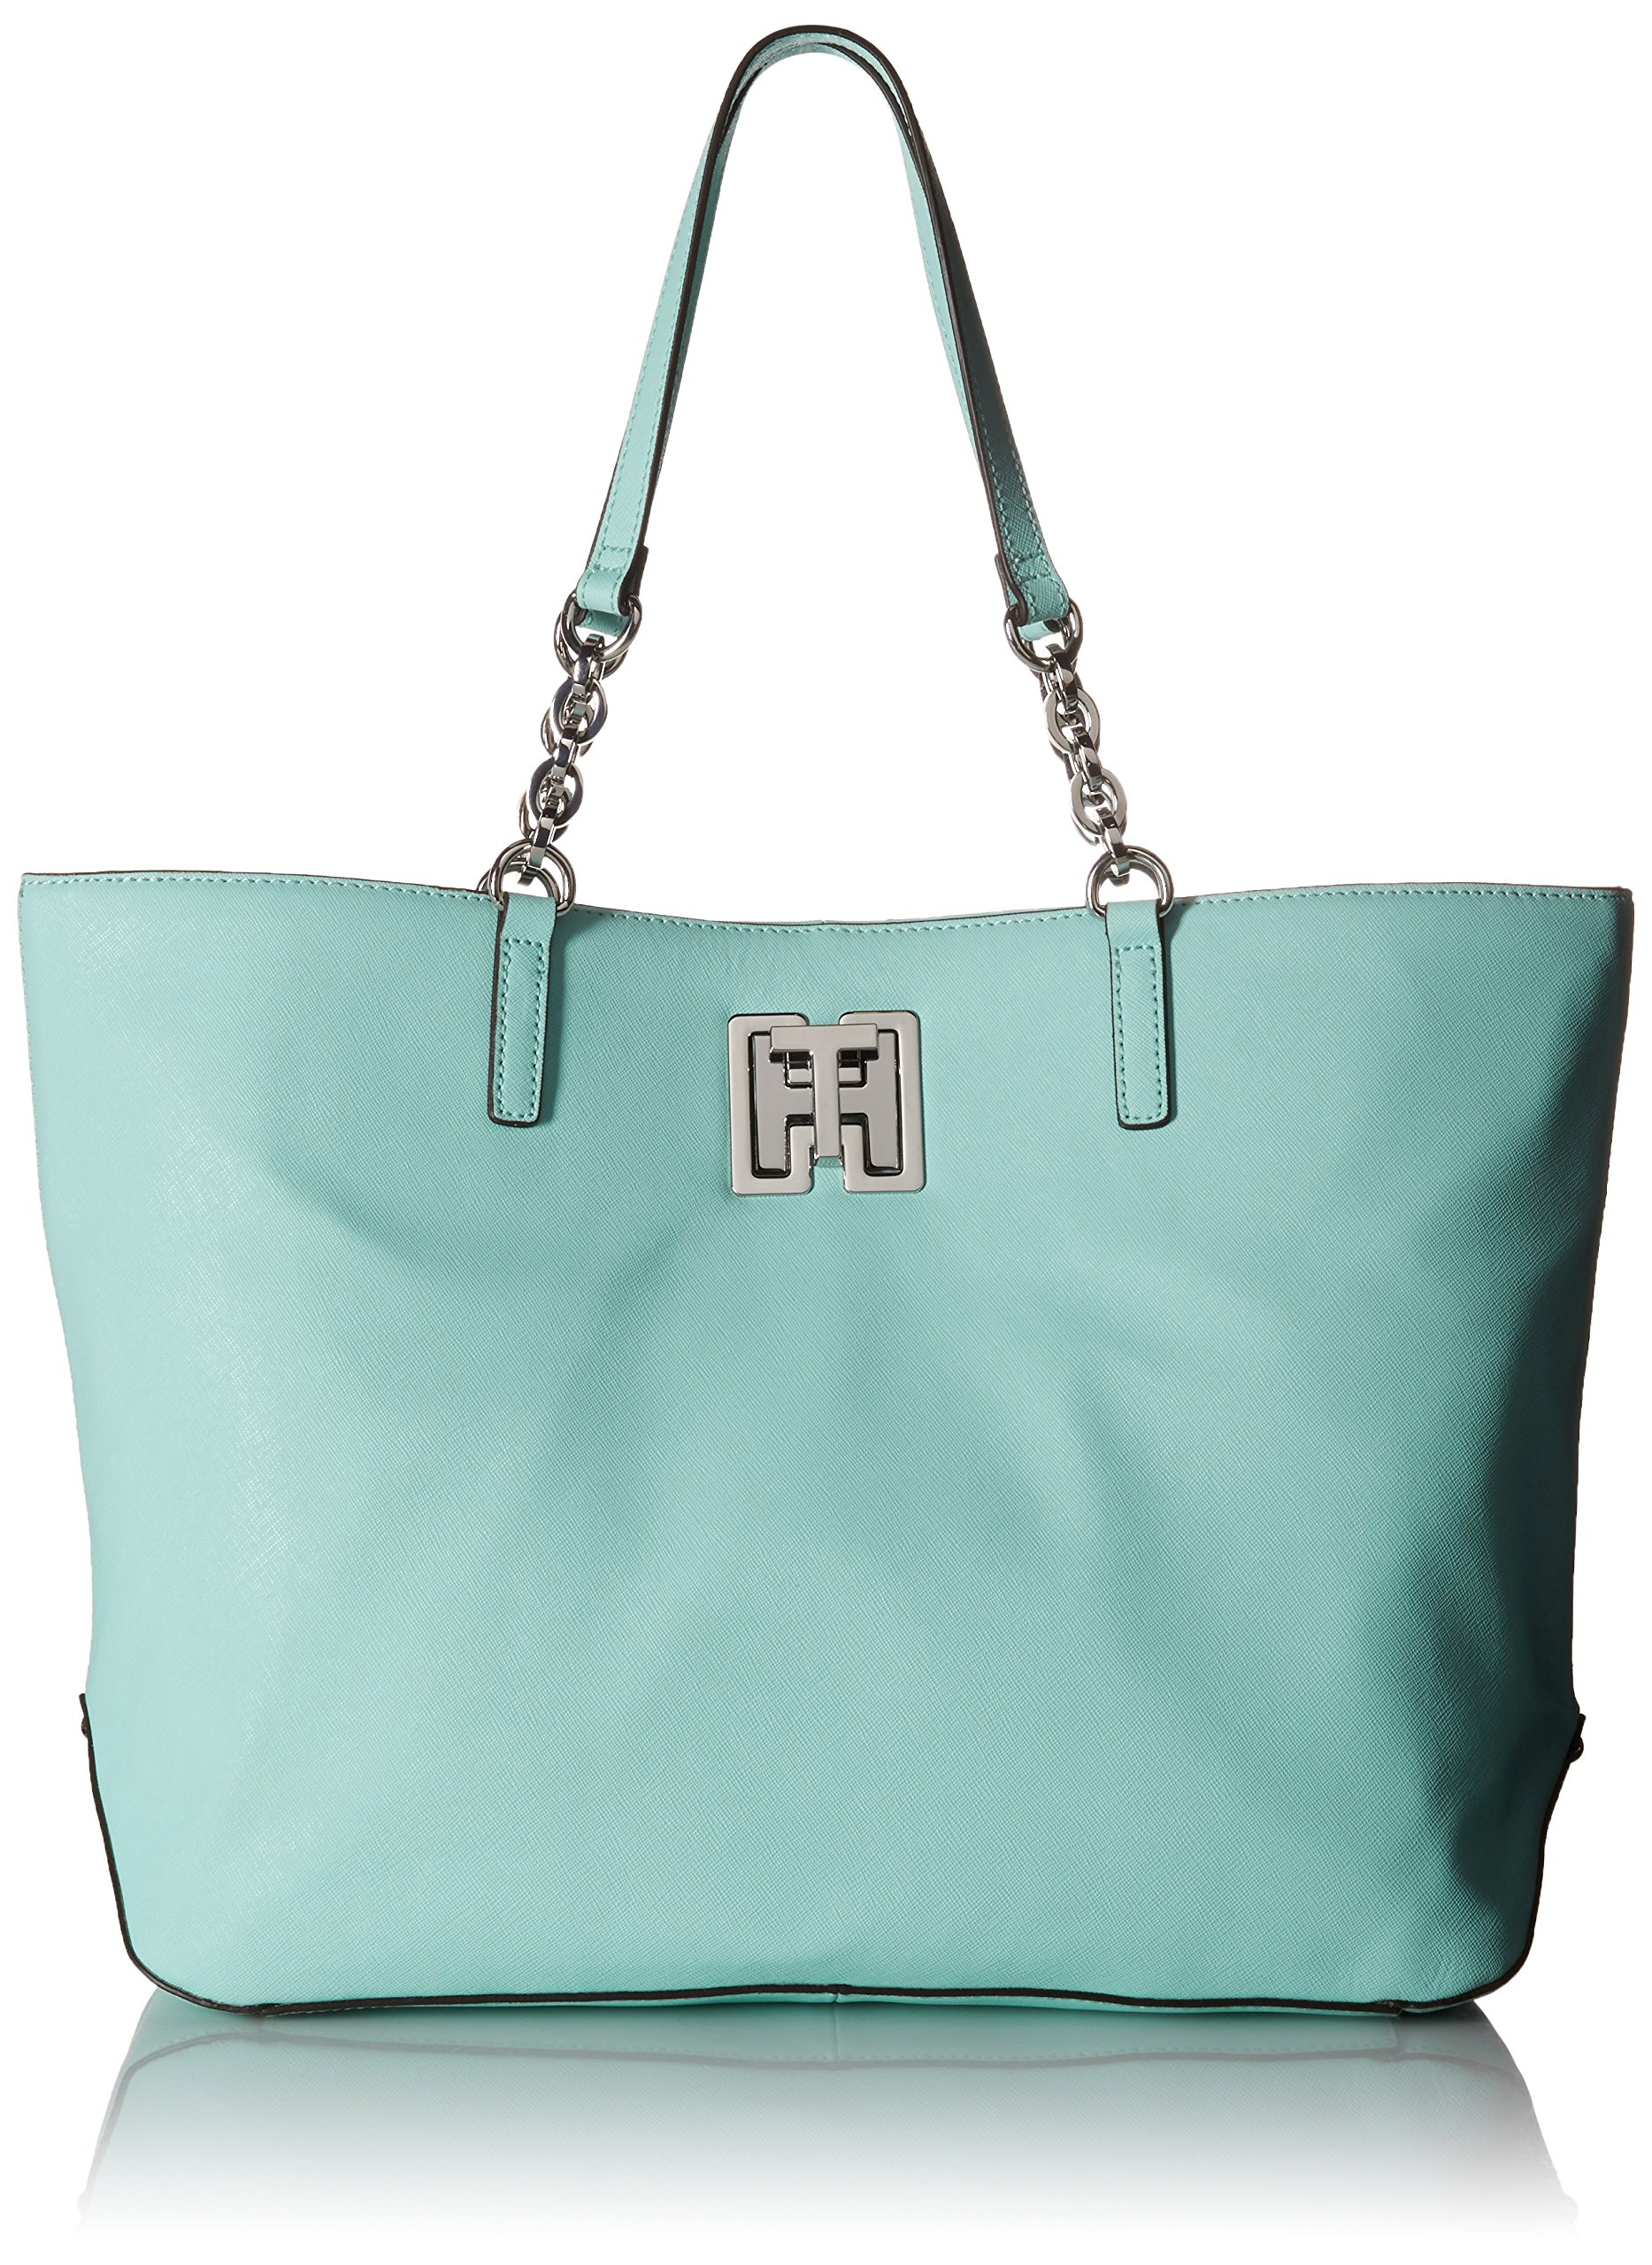 Tommy Hilfiger Clara Tote Top Handle Bag, Sea Glass, One Size by Tommy Hilfiger